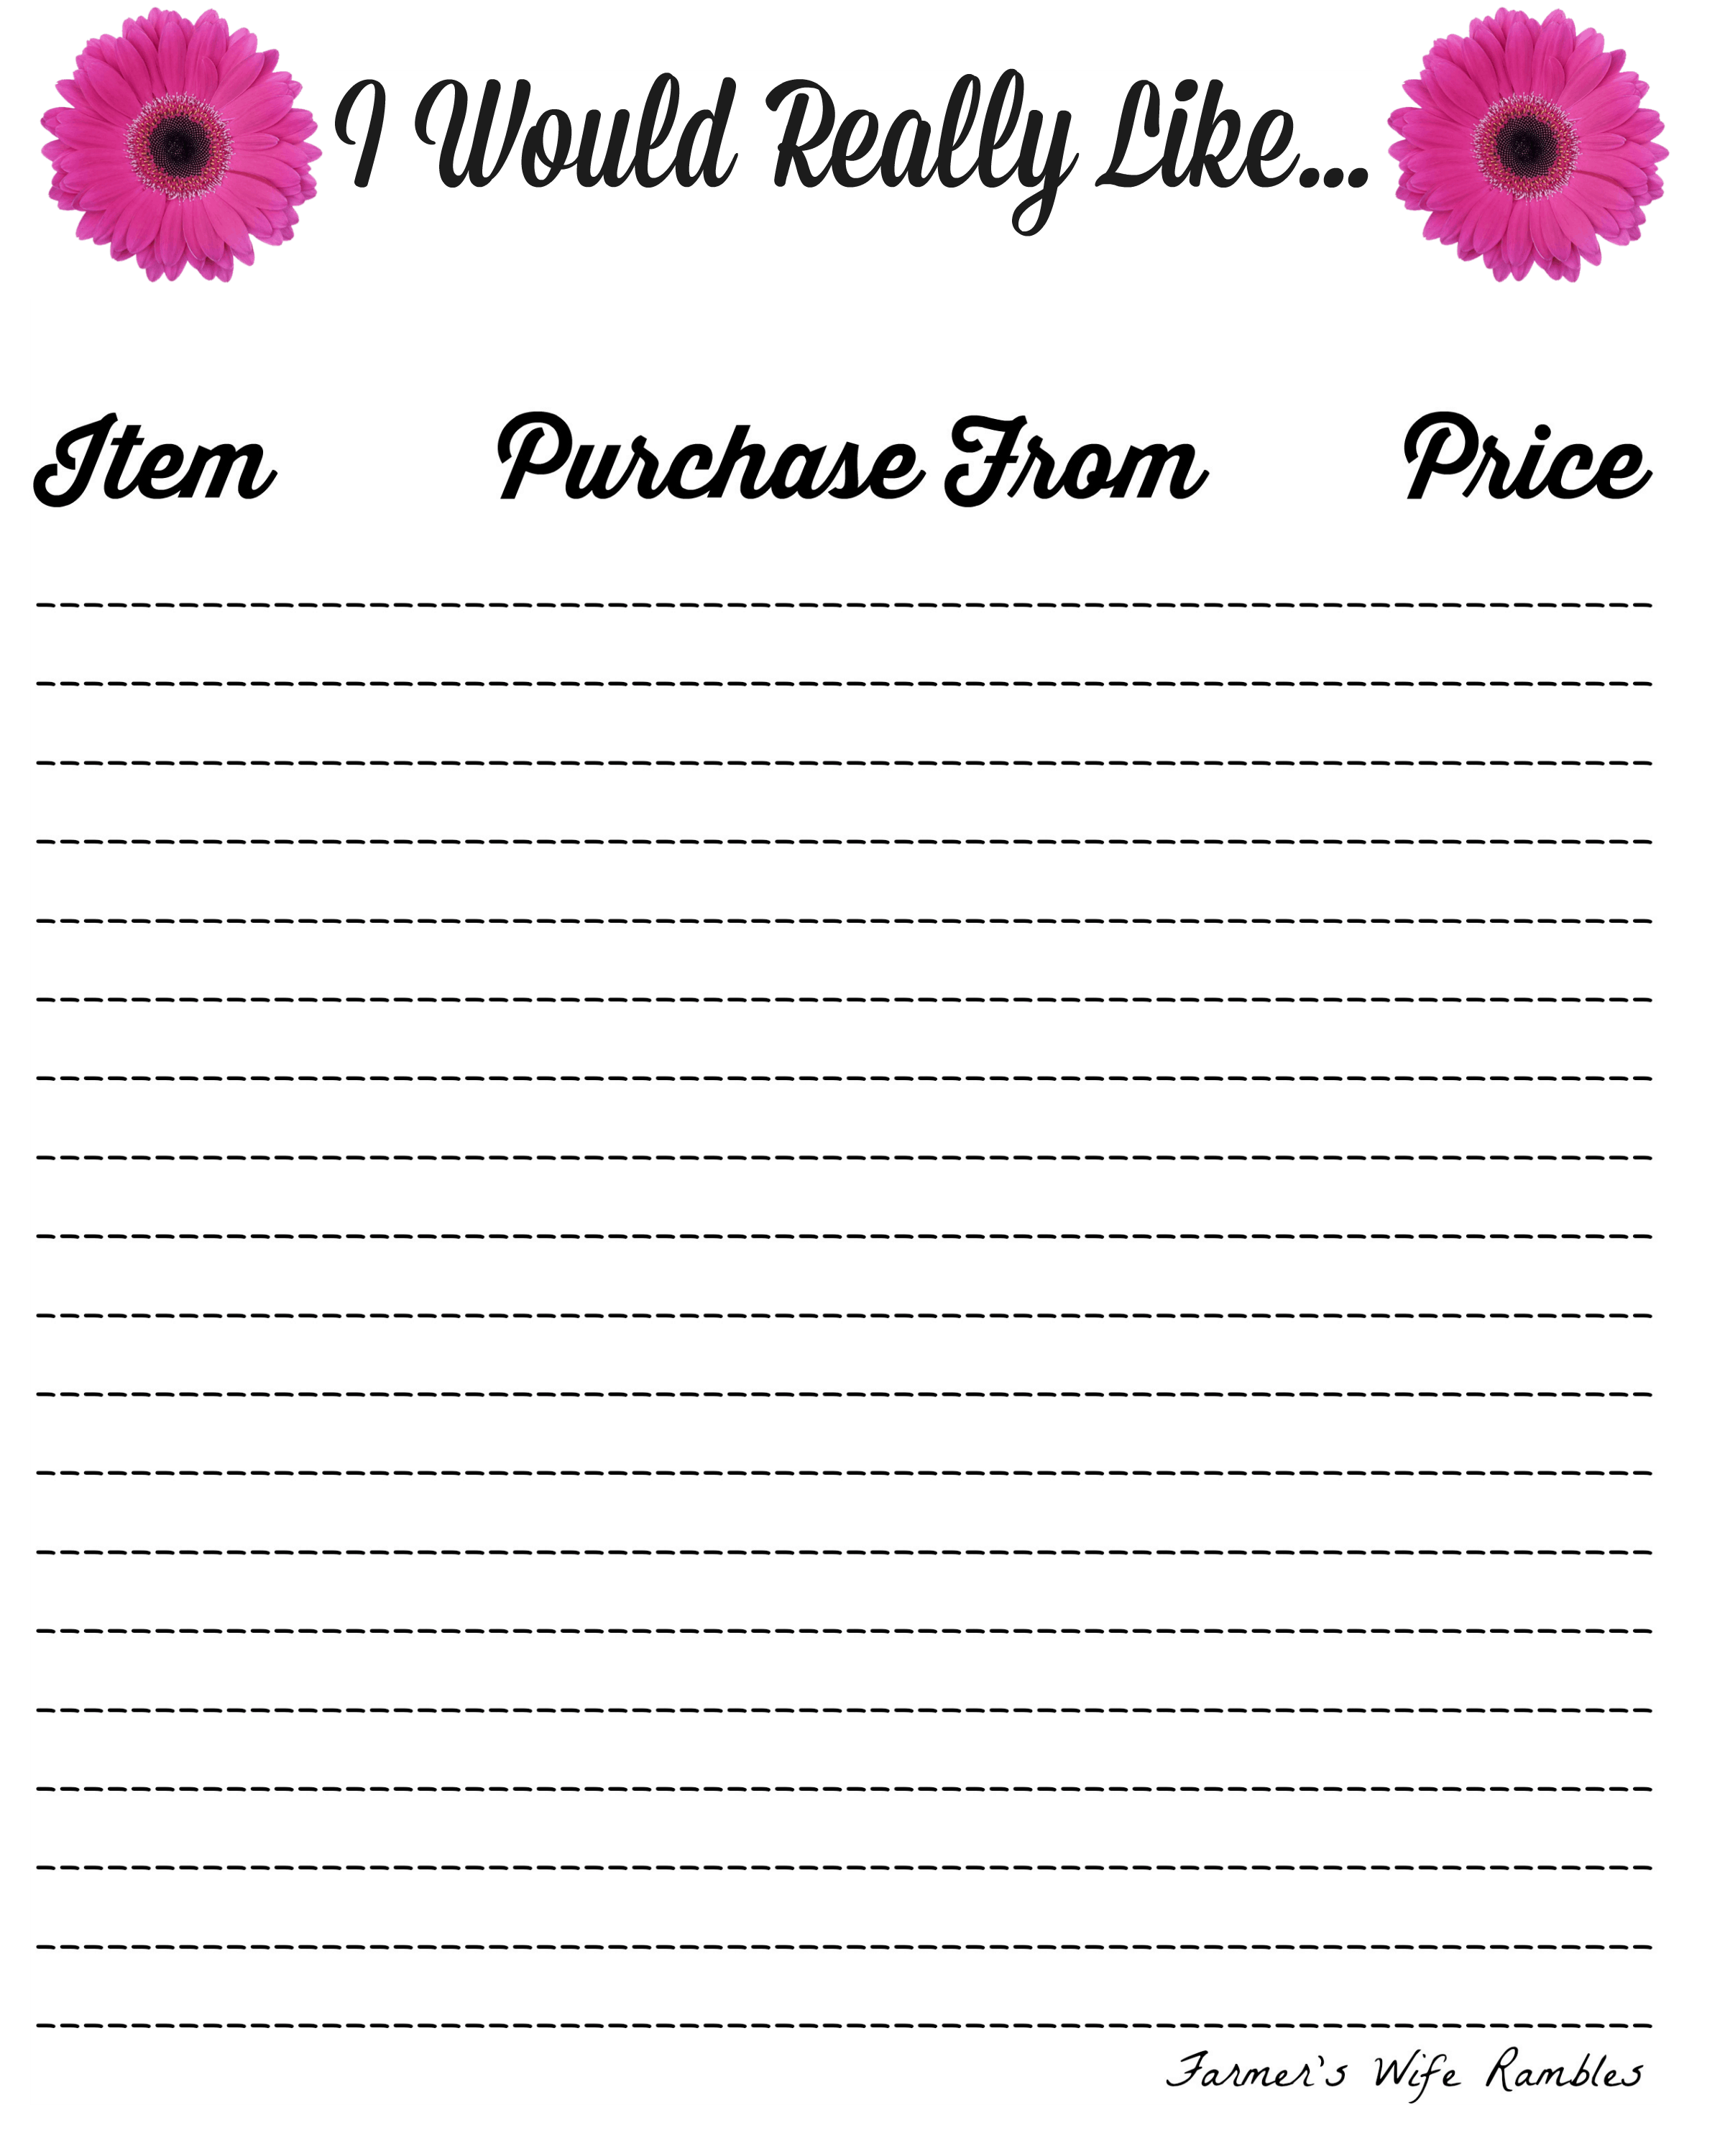 Printable wish list template format for credit note application free printable wish list template i would really like pink daisies free printable wish list template pronofoot35fo Images